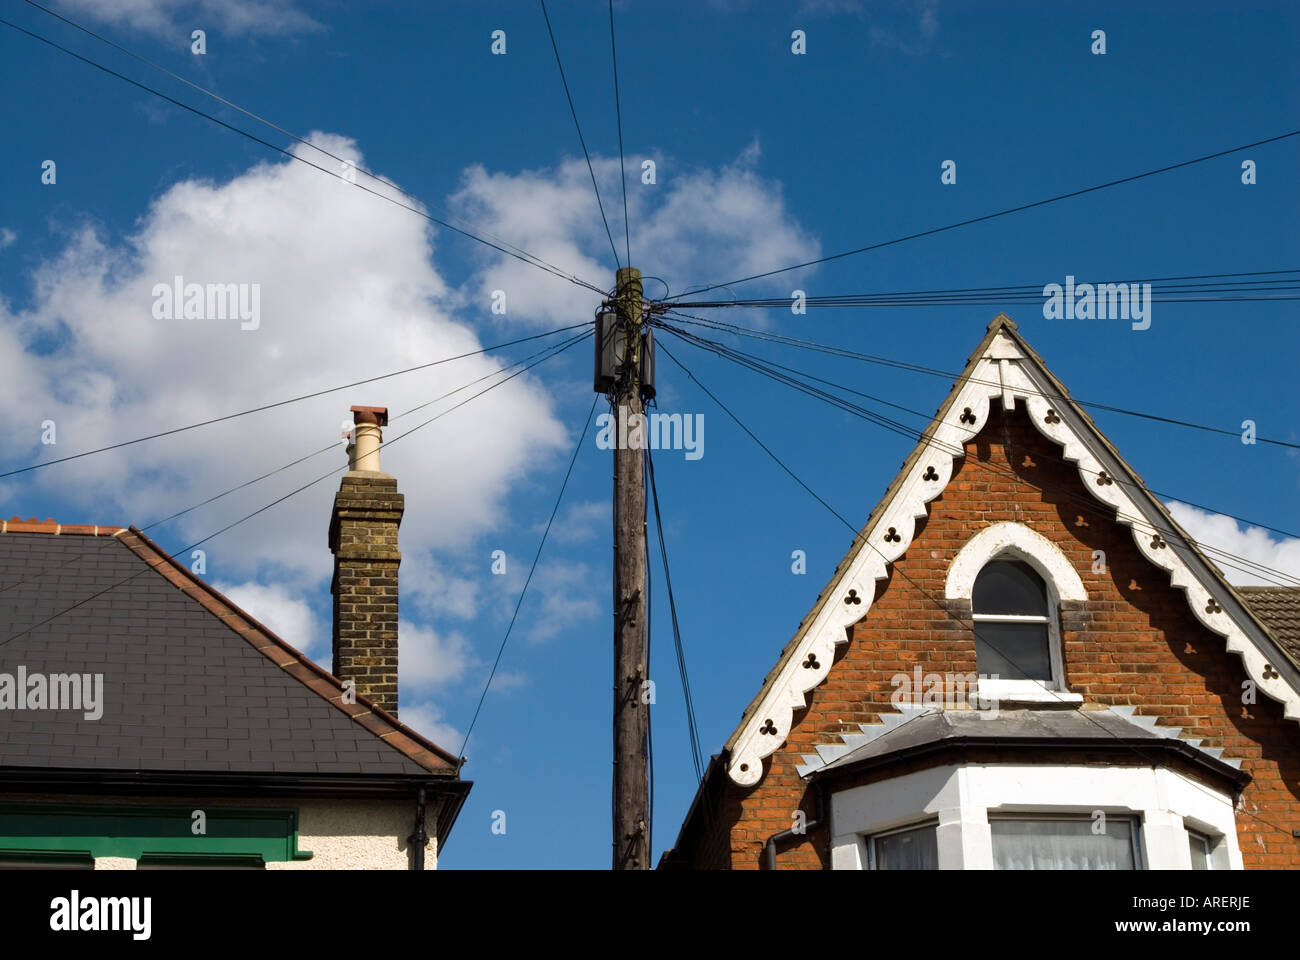 hight resolution of telephone wires attached to wooden post in residential street london england uk